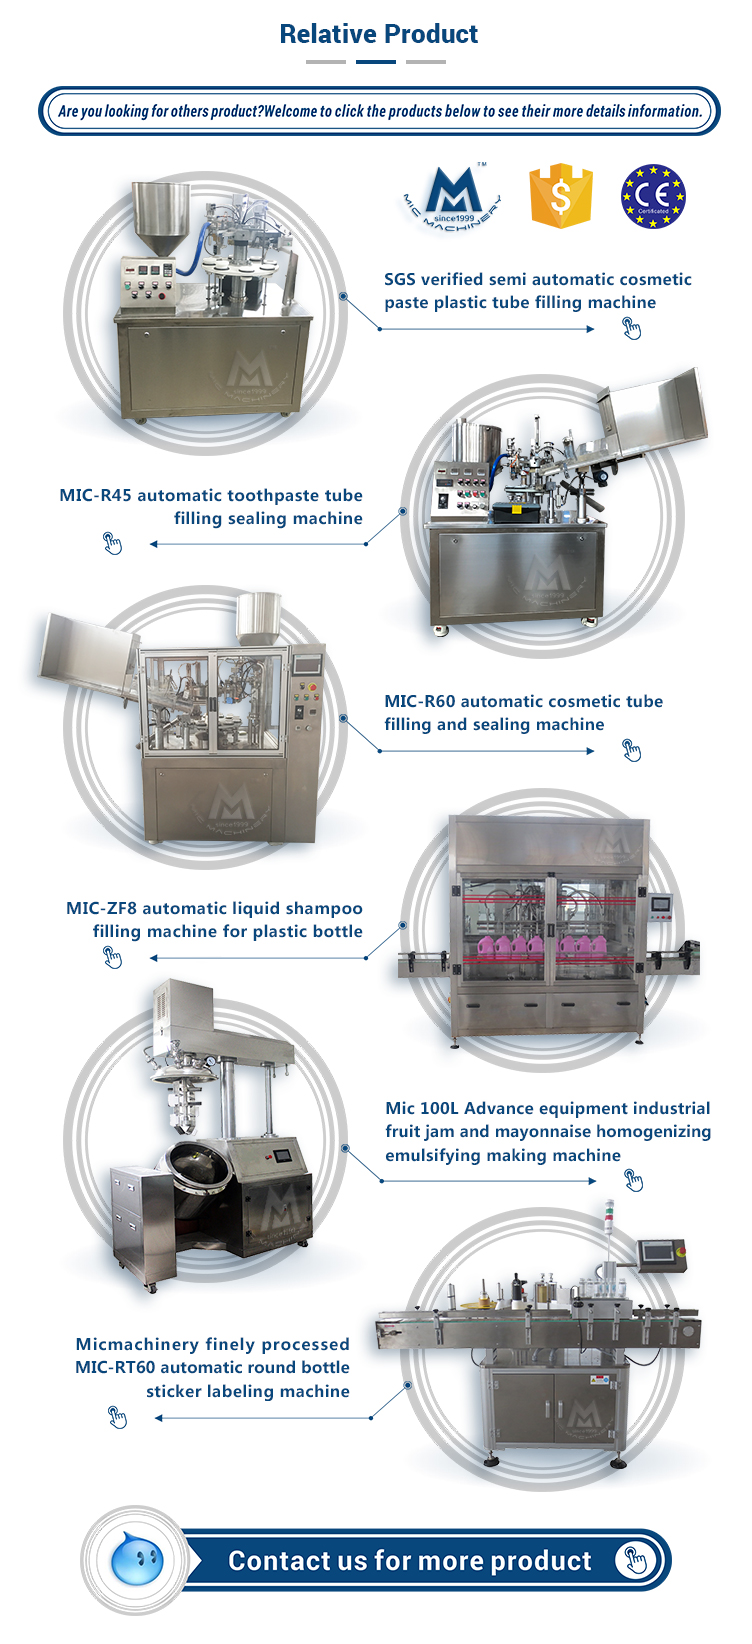 MIC-LL45 automatic cosmetic cream paste glass jar filling capping and labeling machine